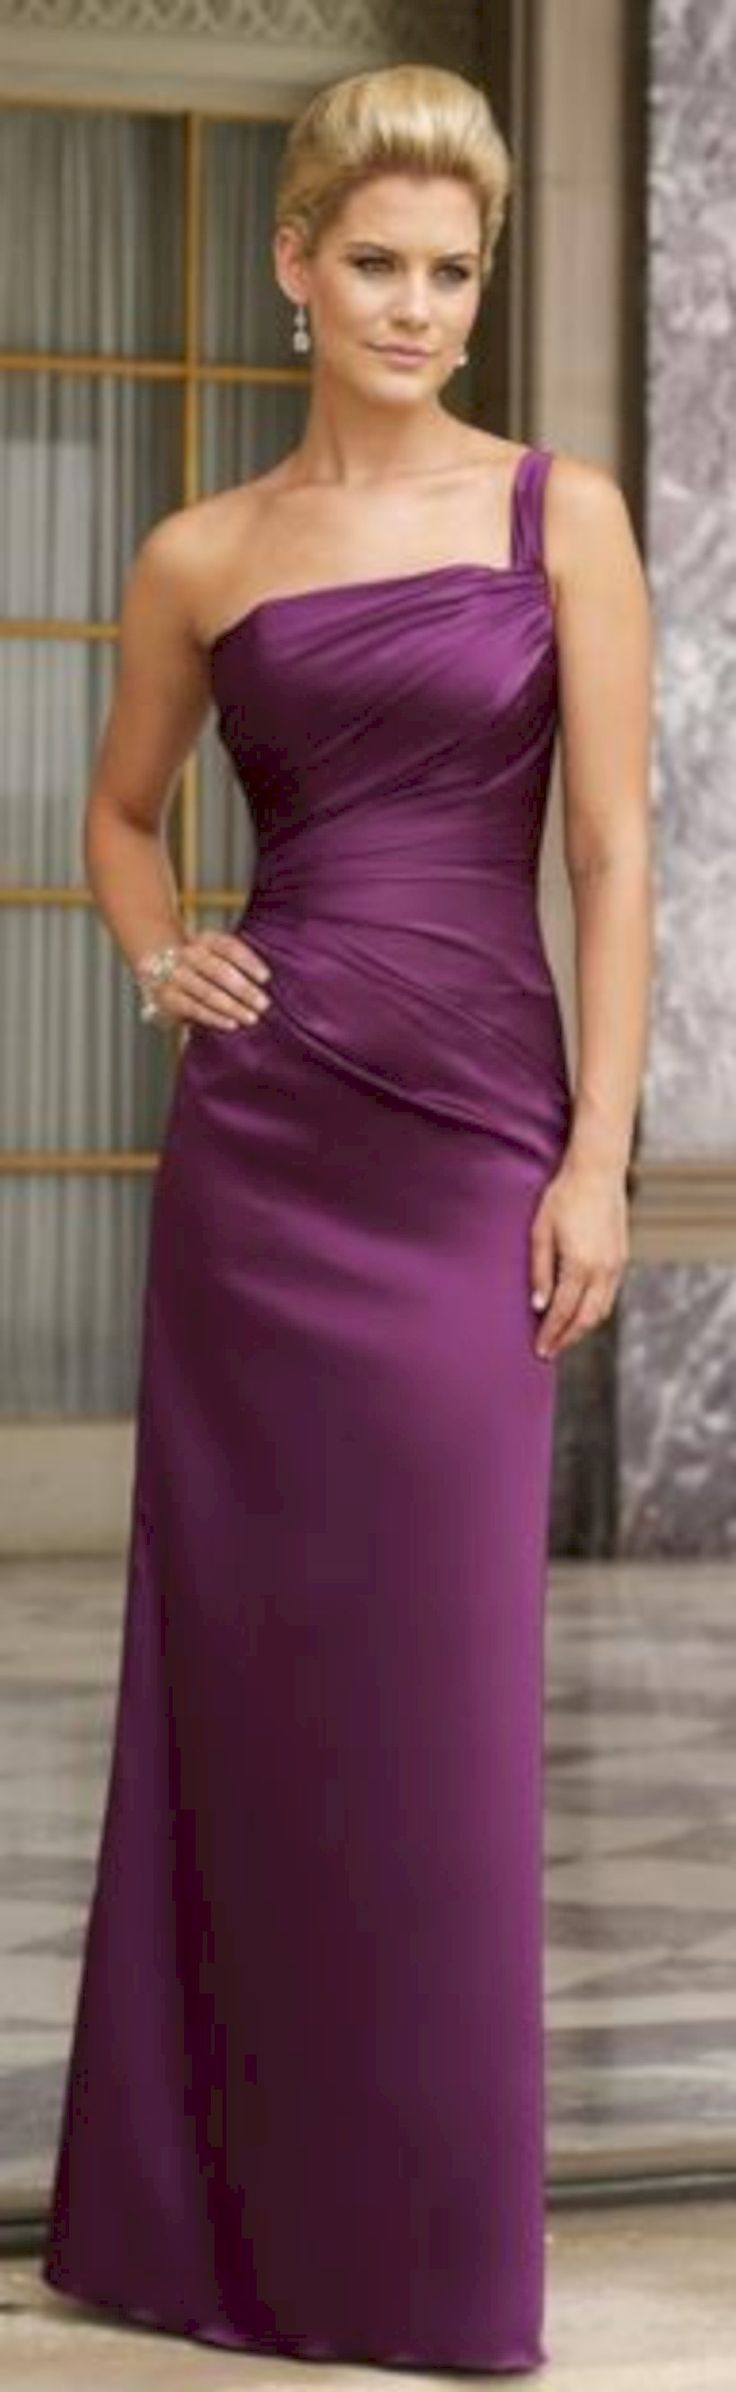 awesome 41 Simple and Elegant Purple Evening Dress http://attirepin.com/2018/01/07/41-simple-elegant-purple-evening-dress/